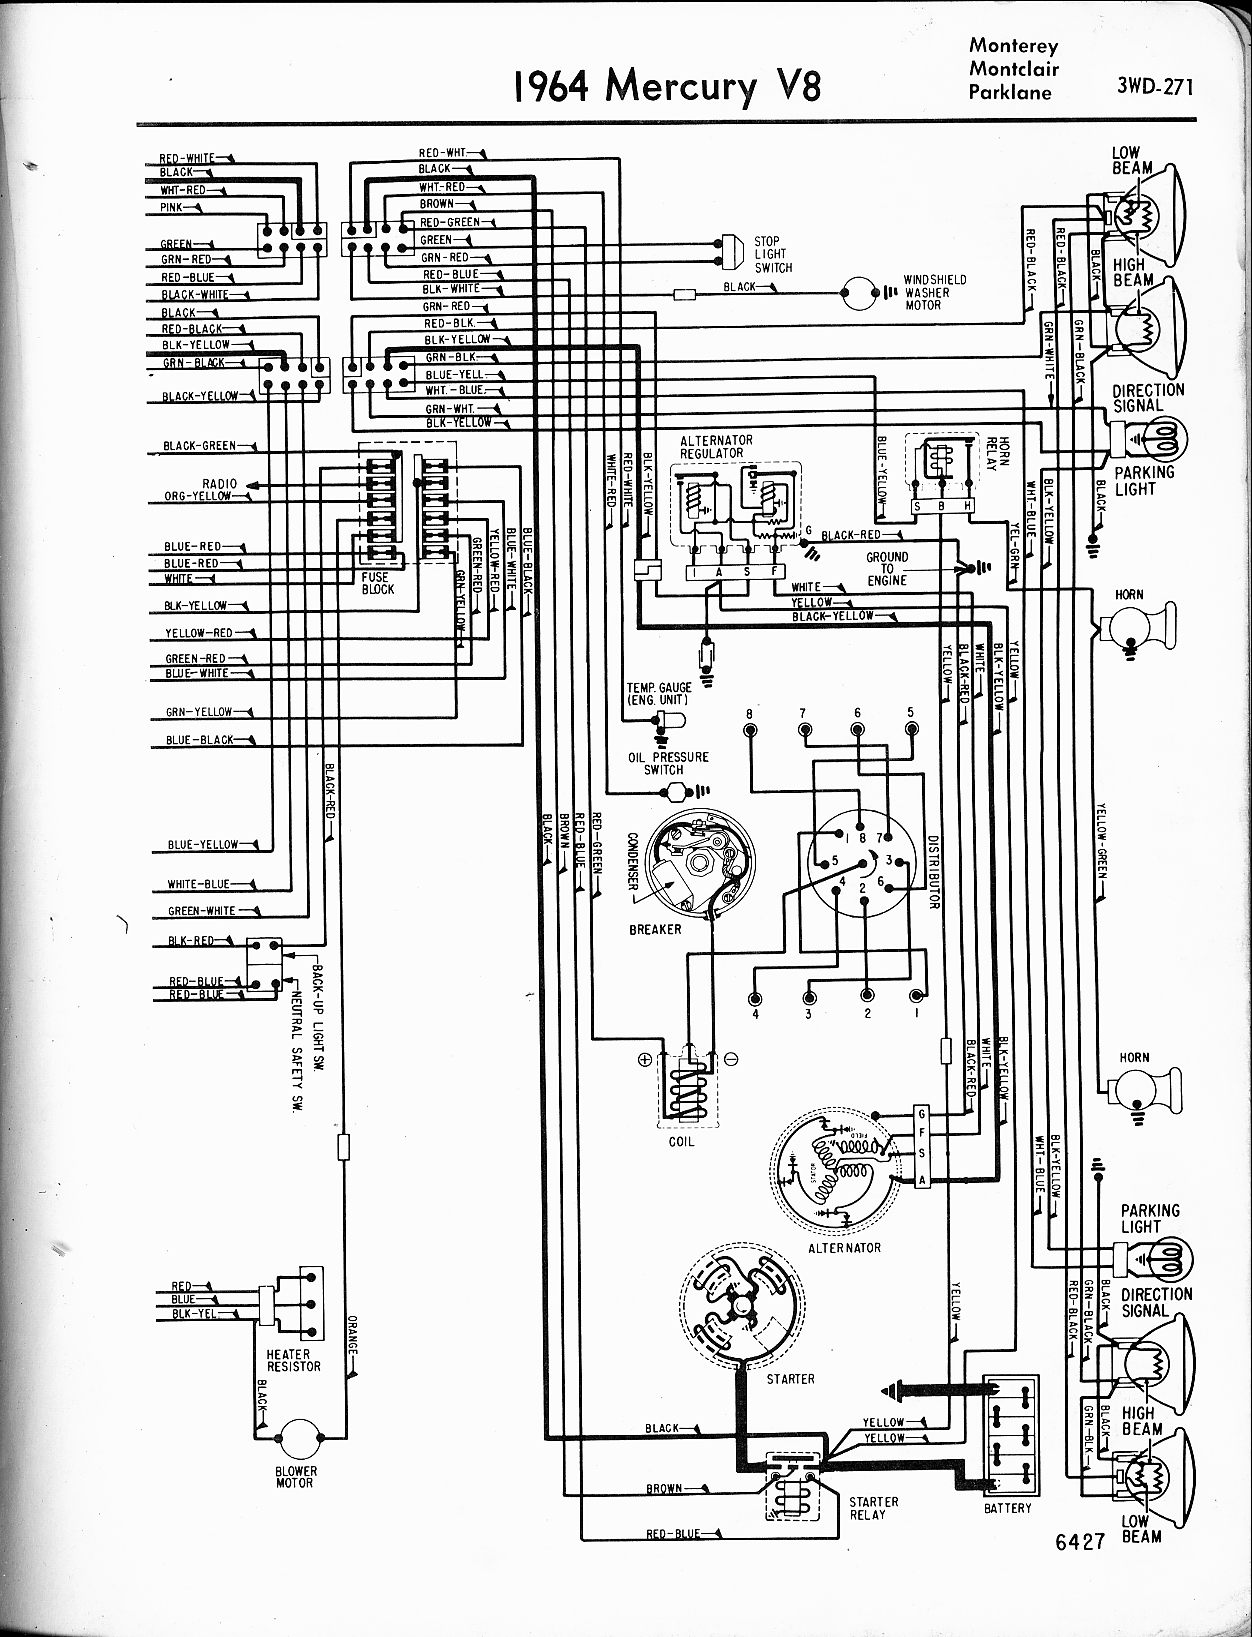 65 Thunderbird Wiring Diagram Libraries Toyota Alternator Harness Mercury Wire Simple Diagrammercury Diagrams The Old Car Manual Project Marine Parts